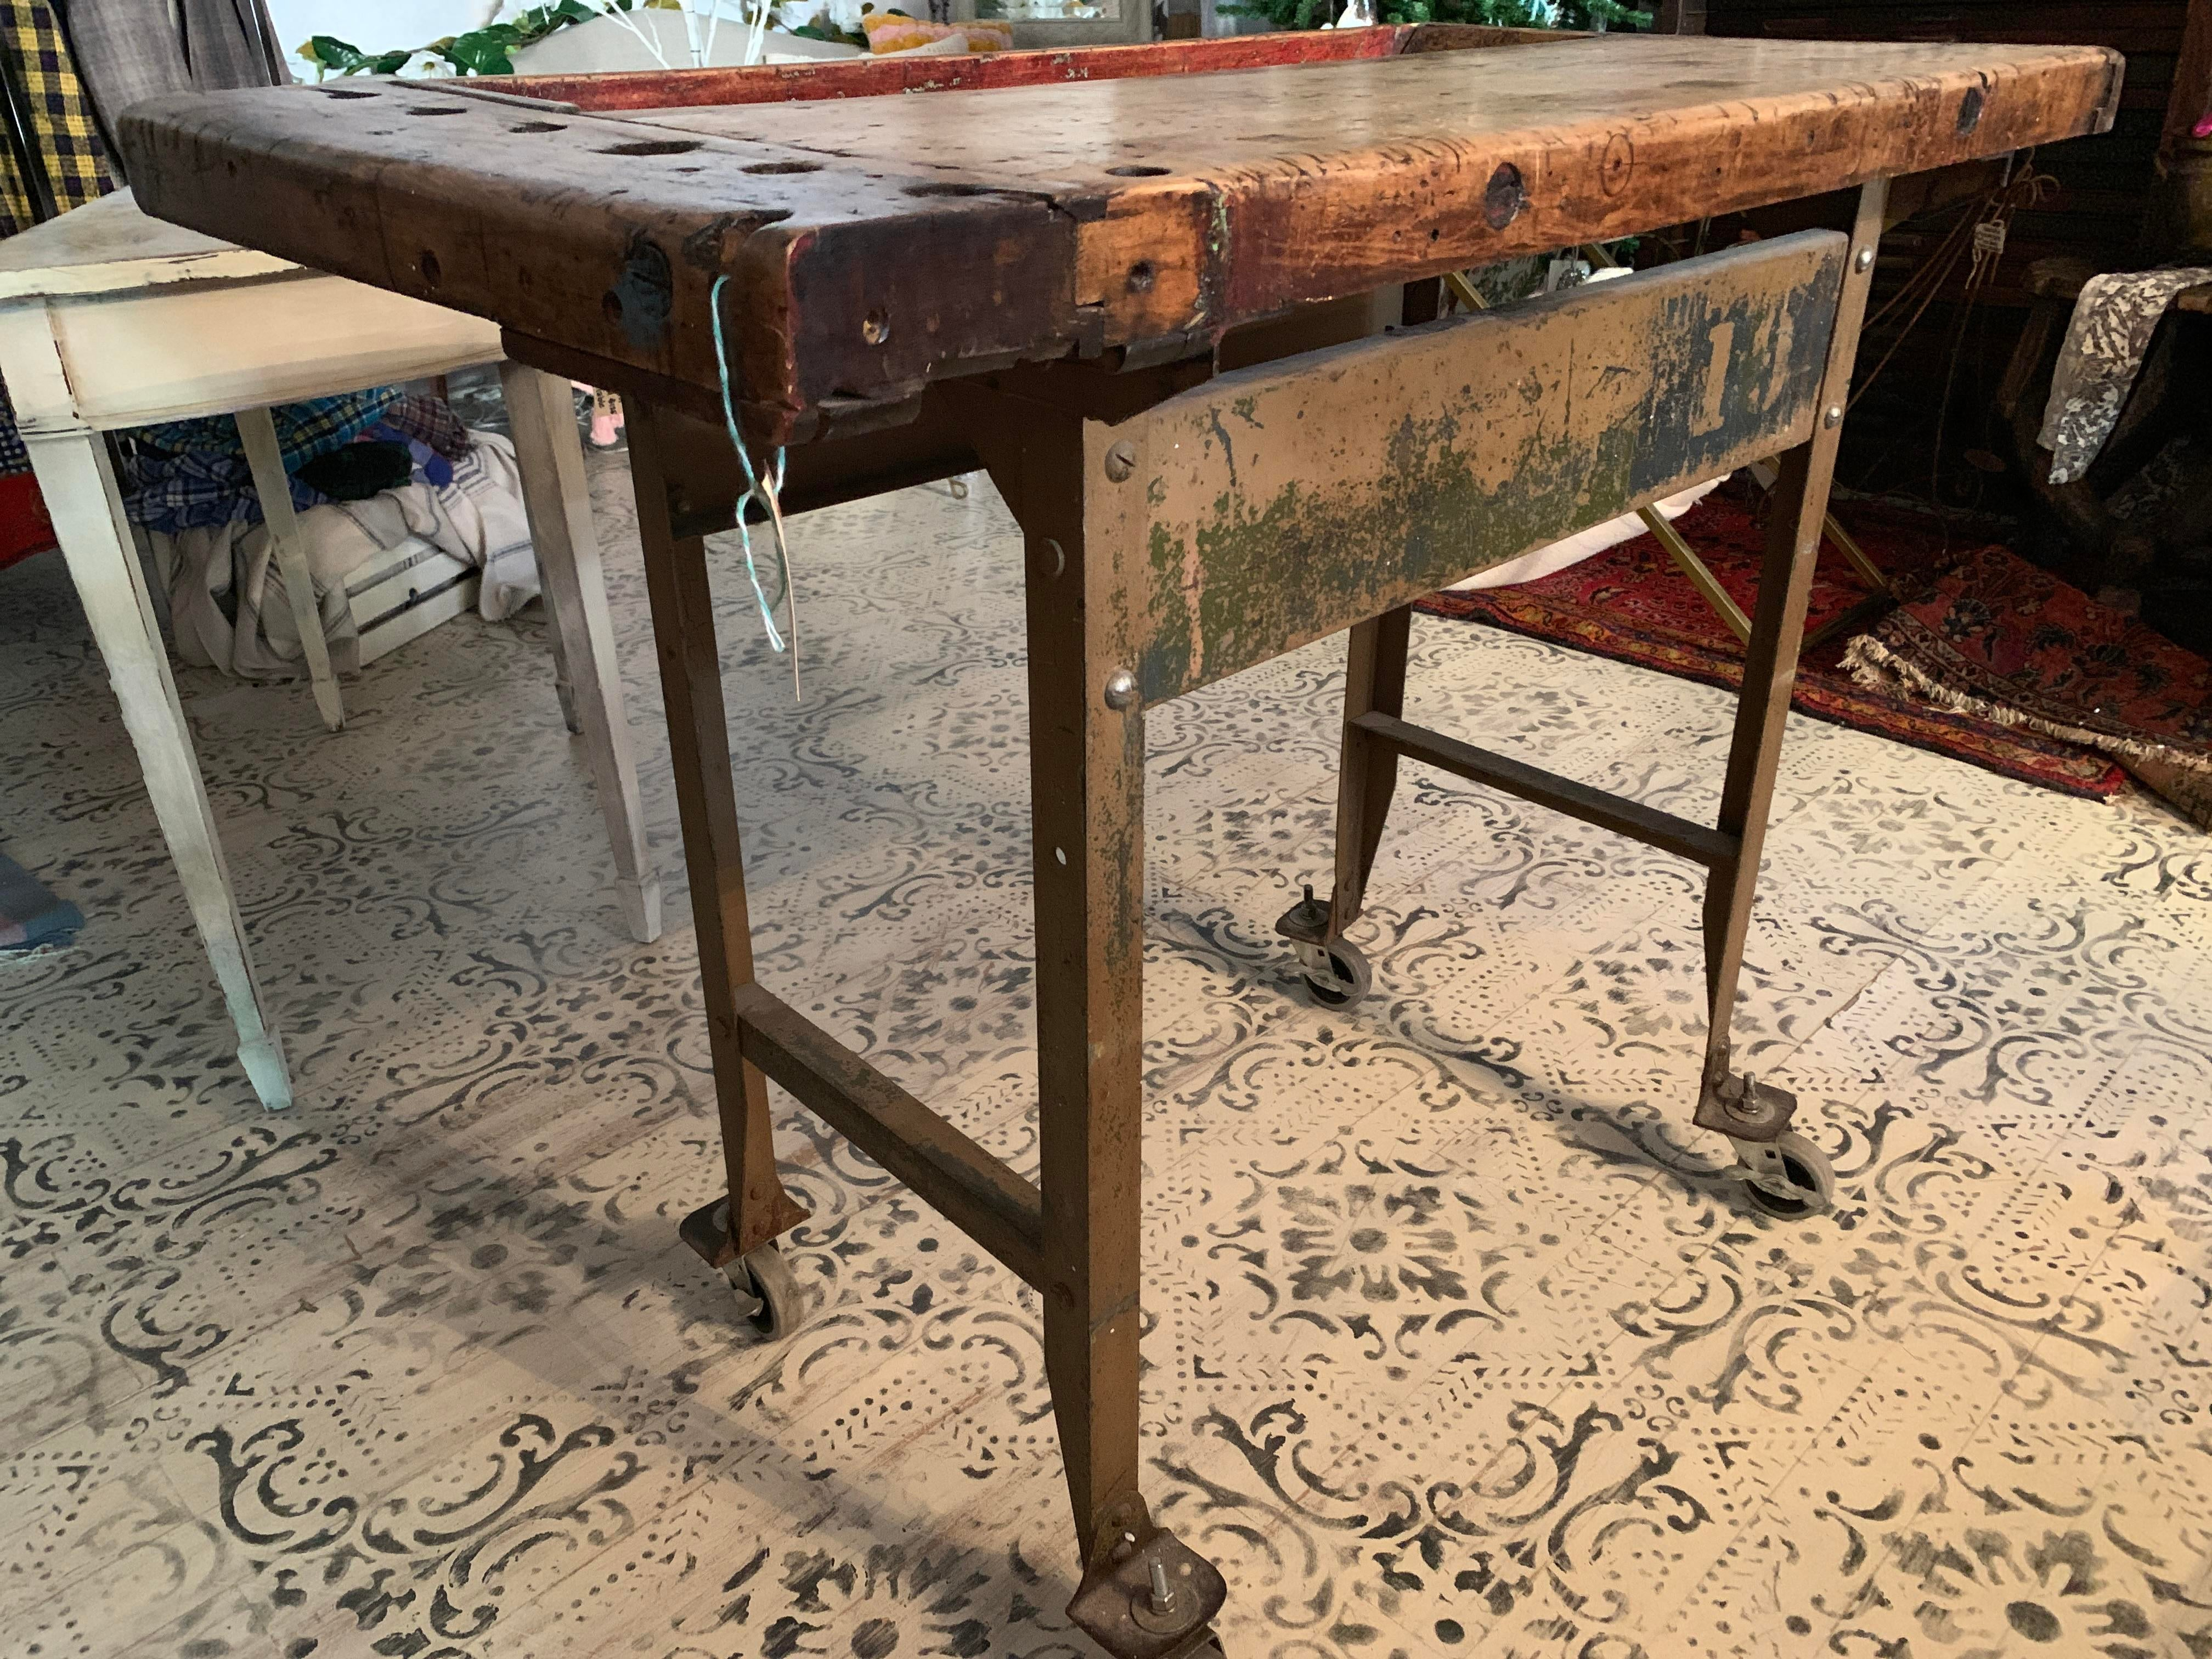 kitchen workbench las vegas strip hotels with 1940s industrial carpenter s island chairish this factory salvage piece is seriously cool the butcher block top an old